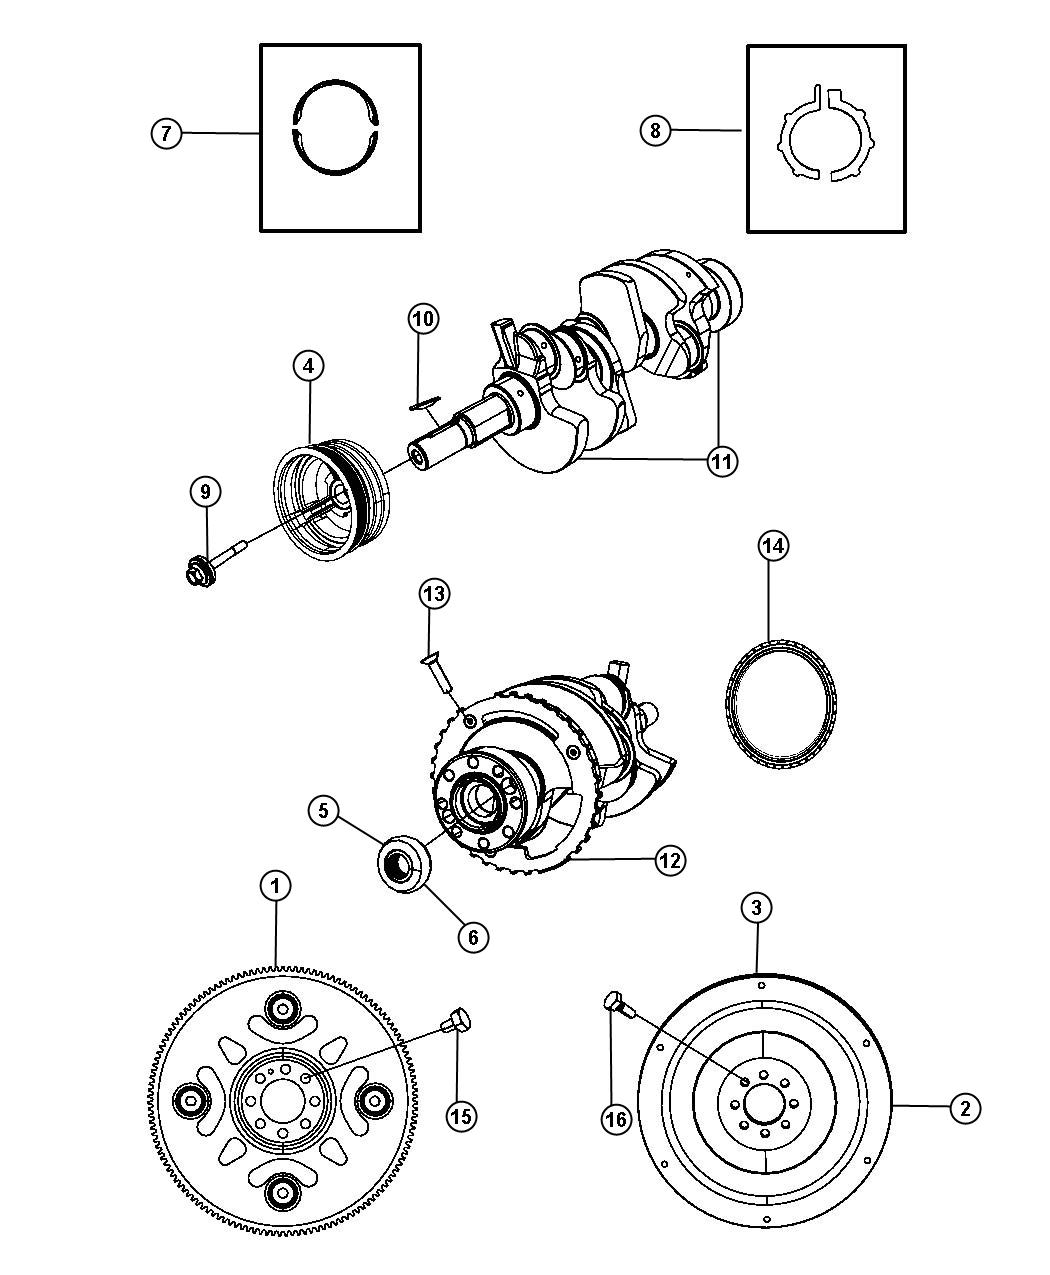 Jeep Liberty SPORT Crankshaft,Bearings,Damper,Flywheel And